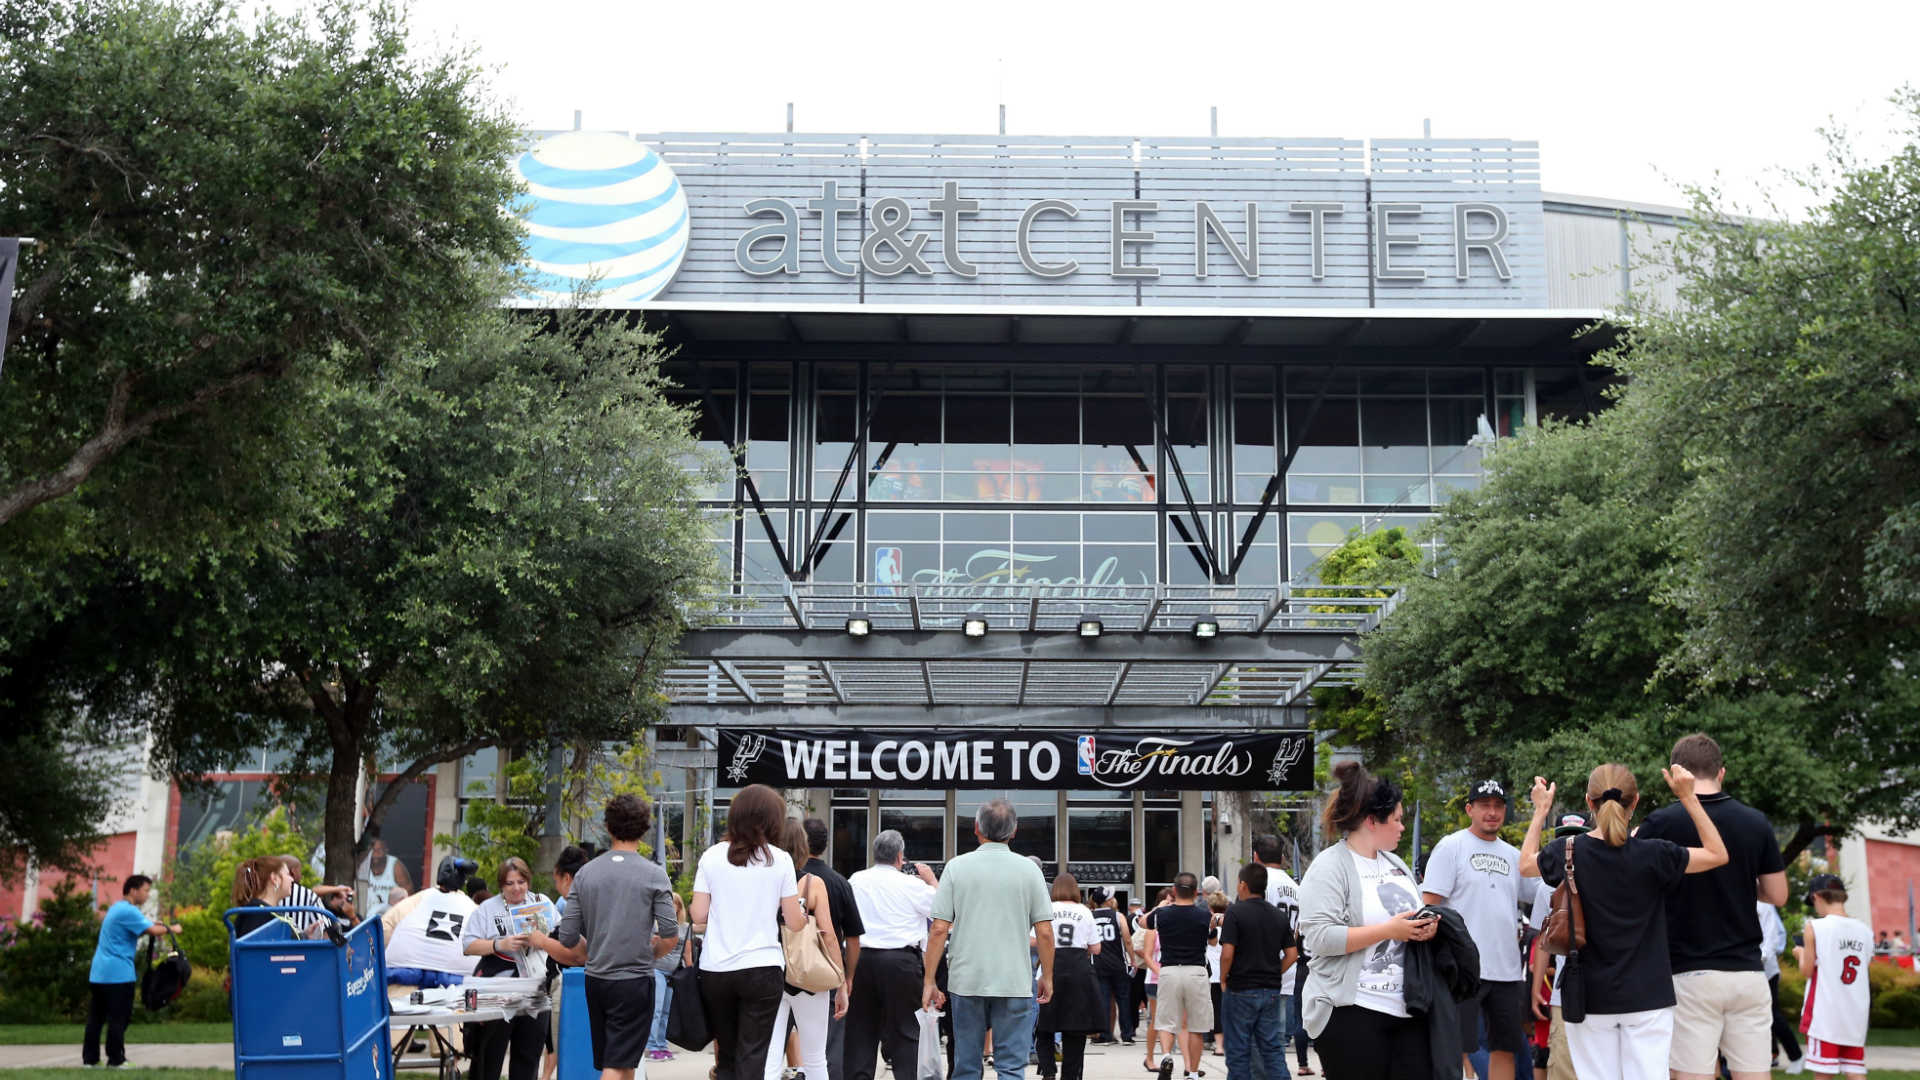 reputable site d4879 27a0a Spurs announce major upgrades to AT&T Center | Sporting News